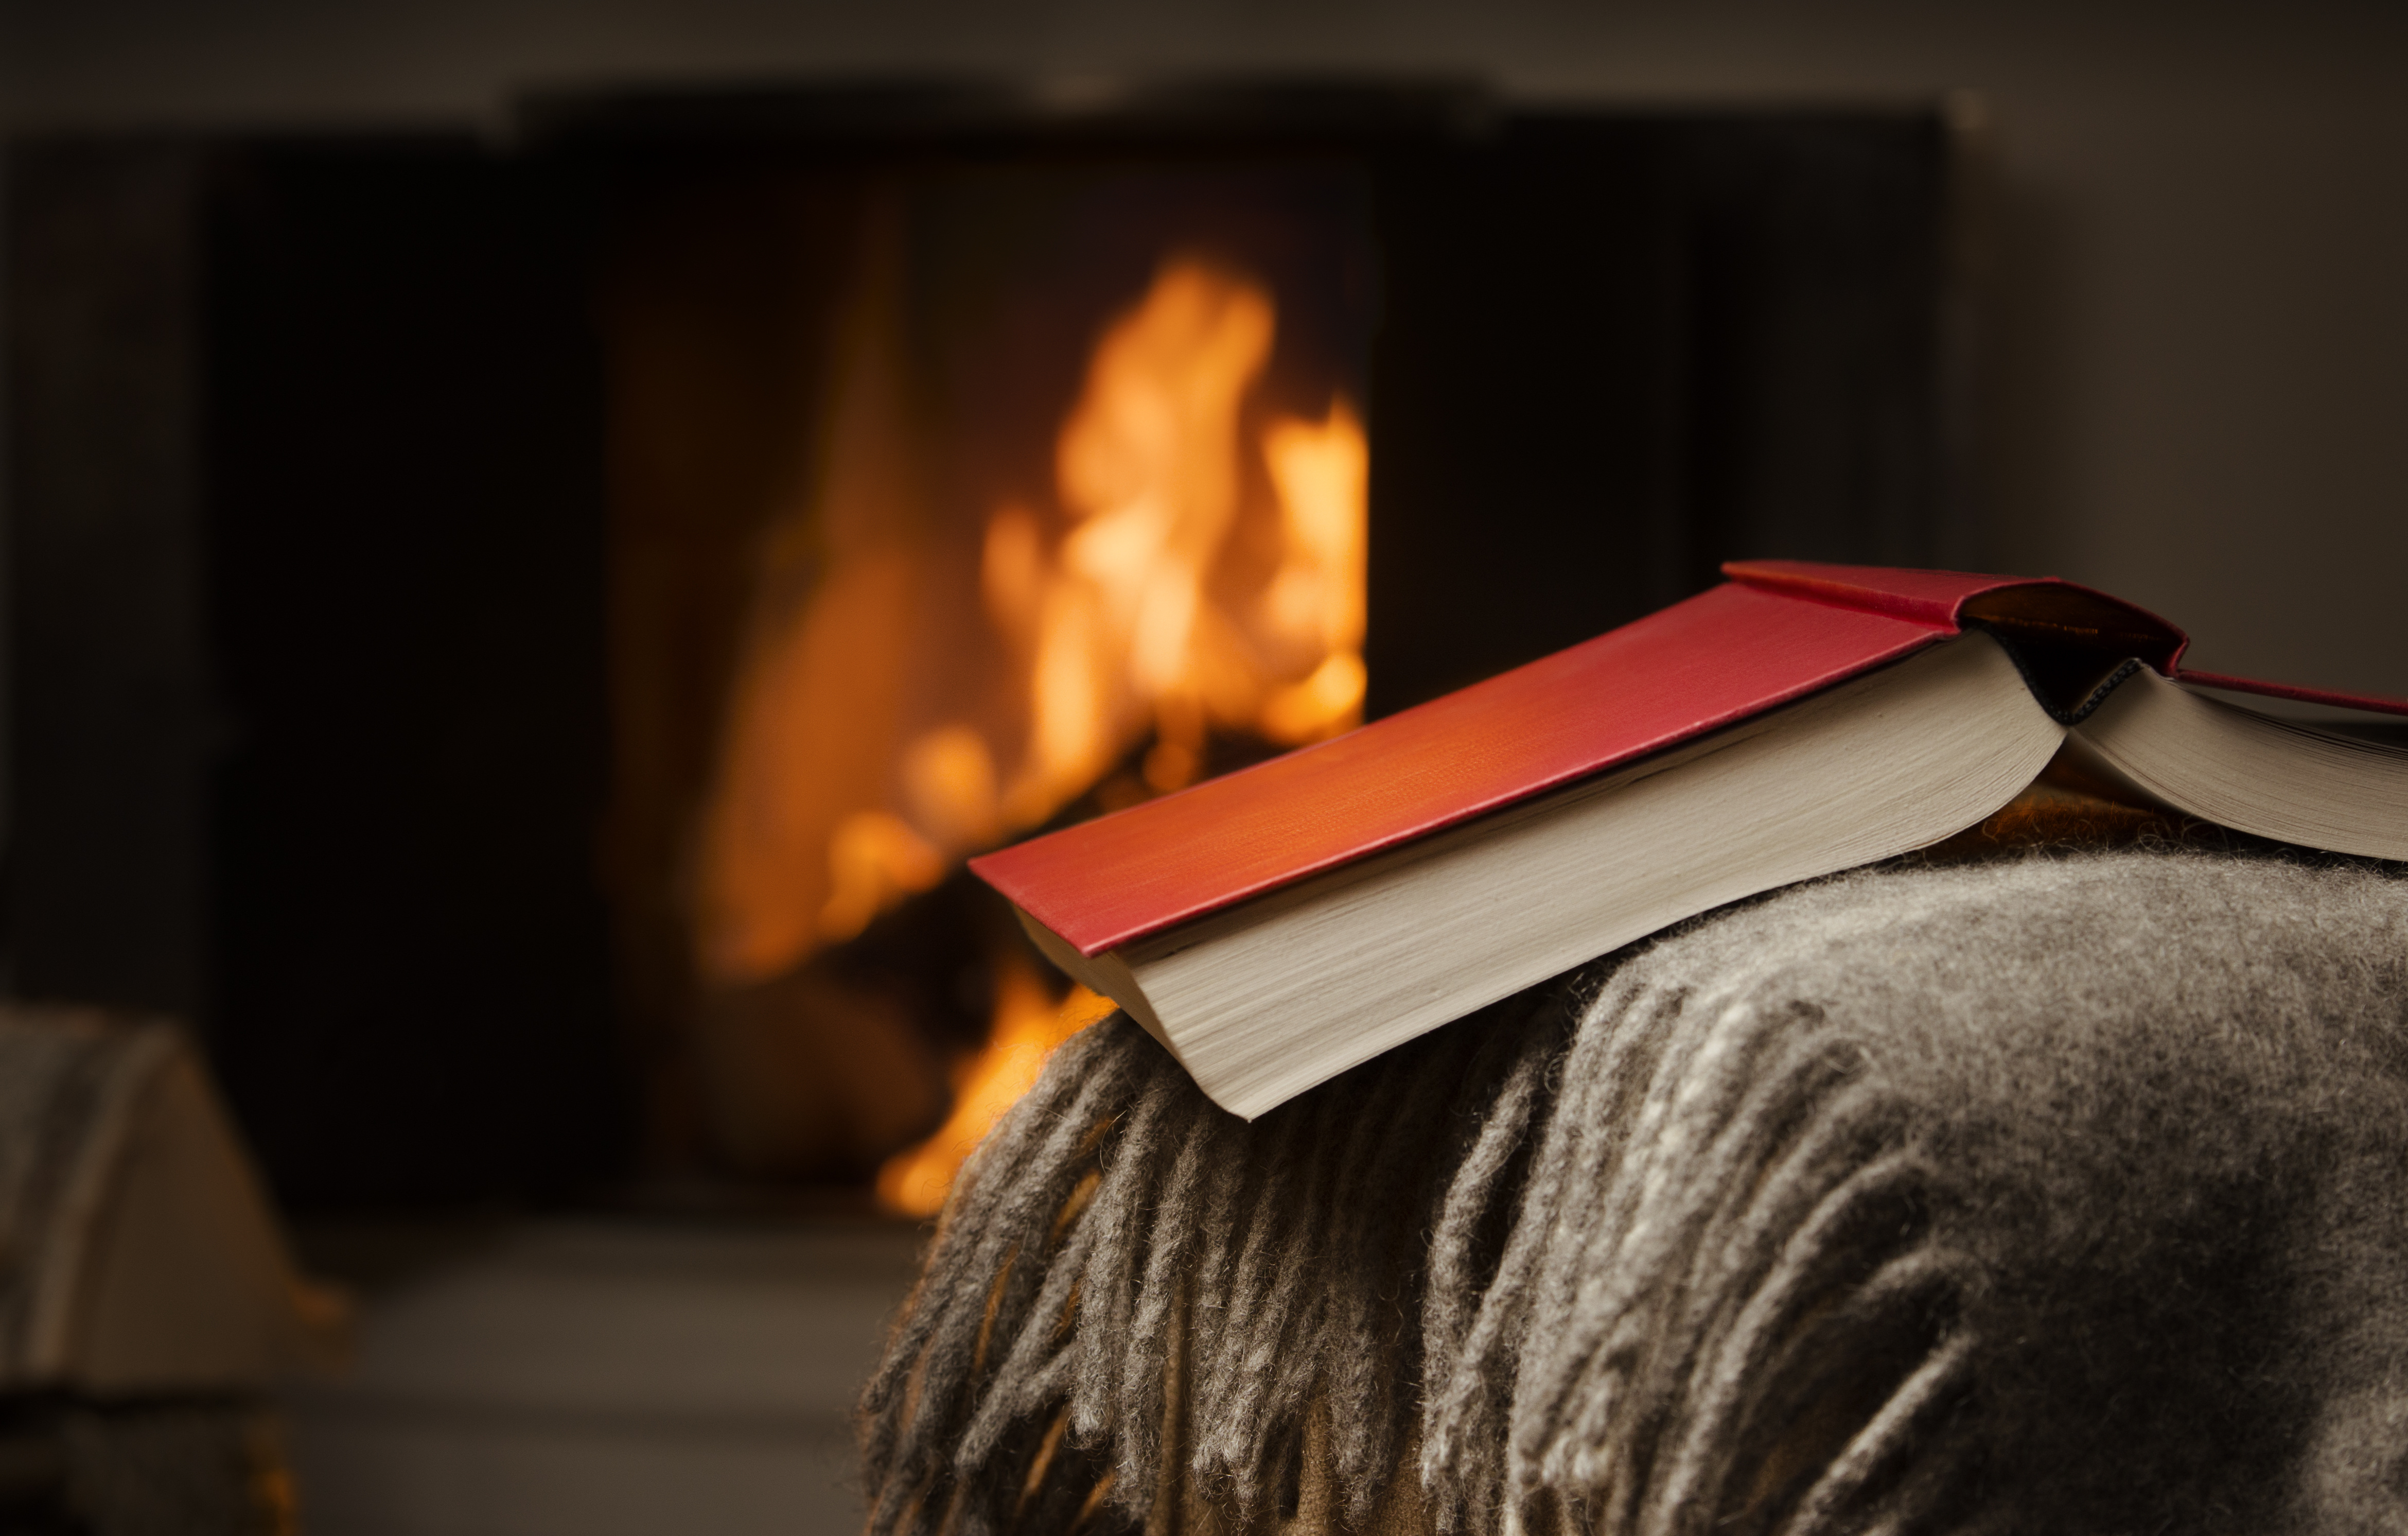 Book in front of fireplace in Maine